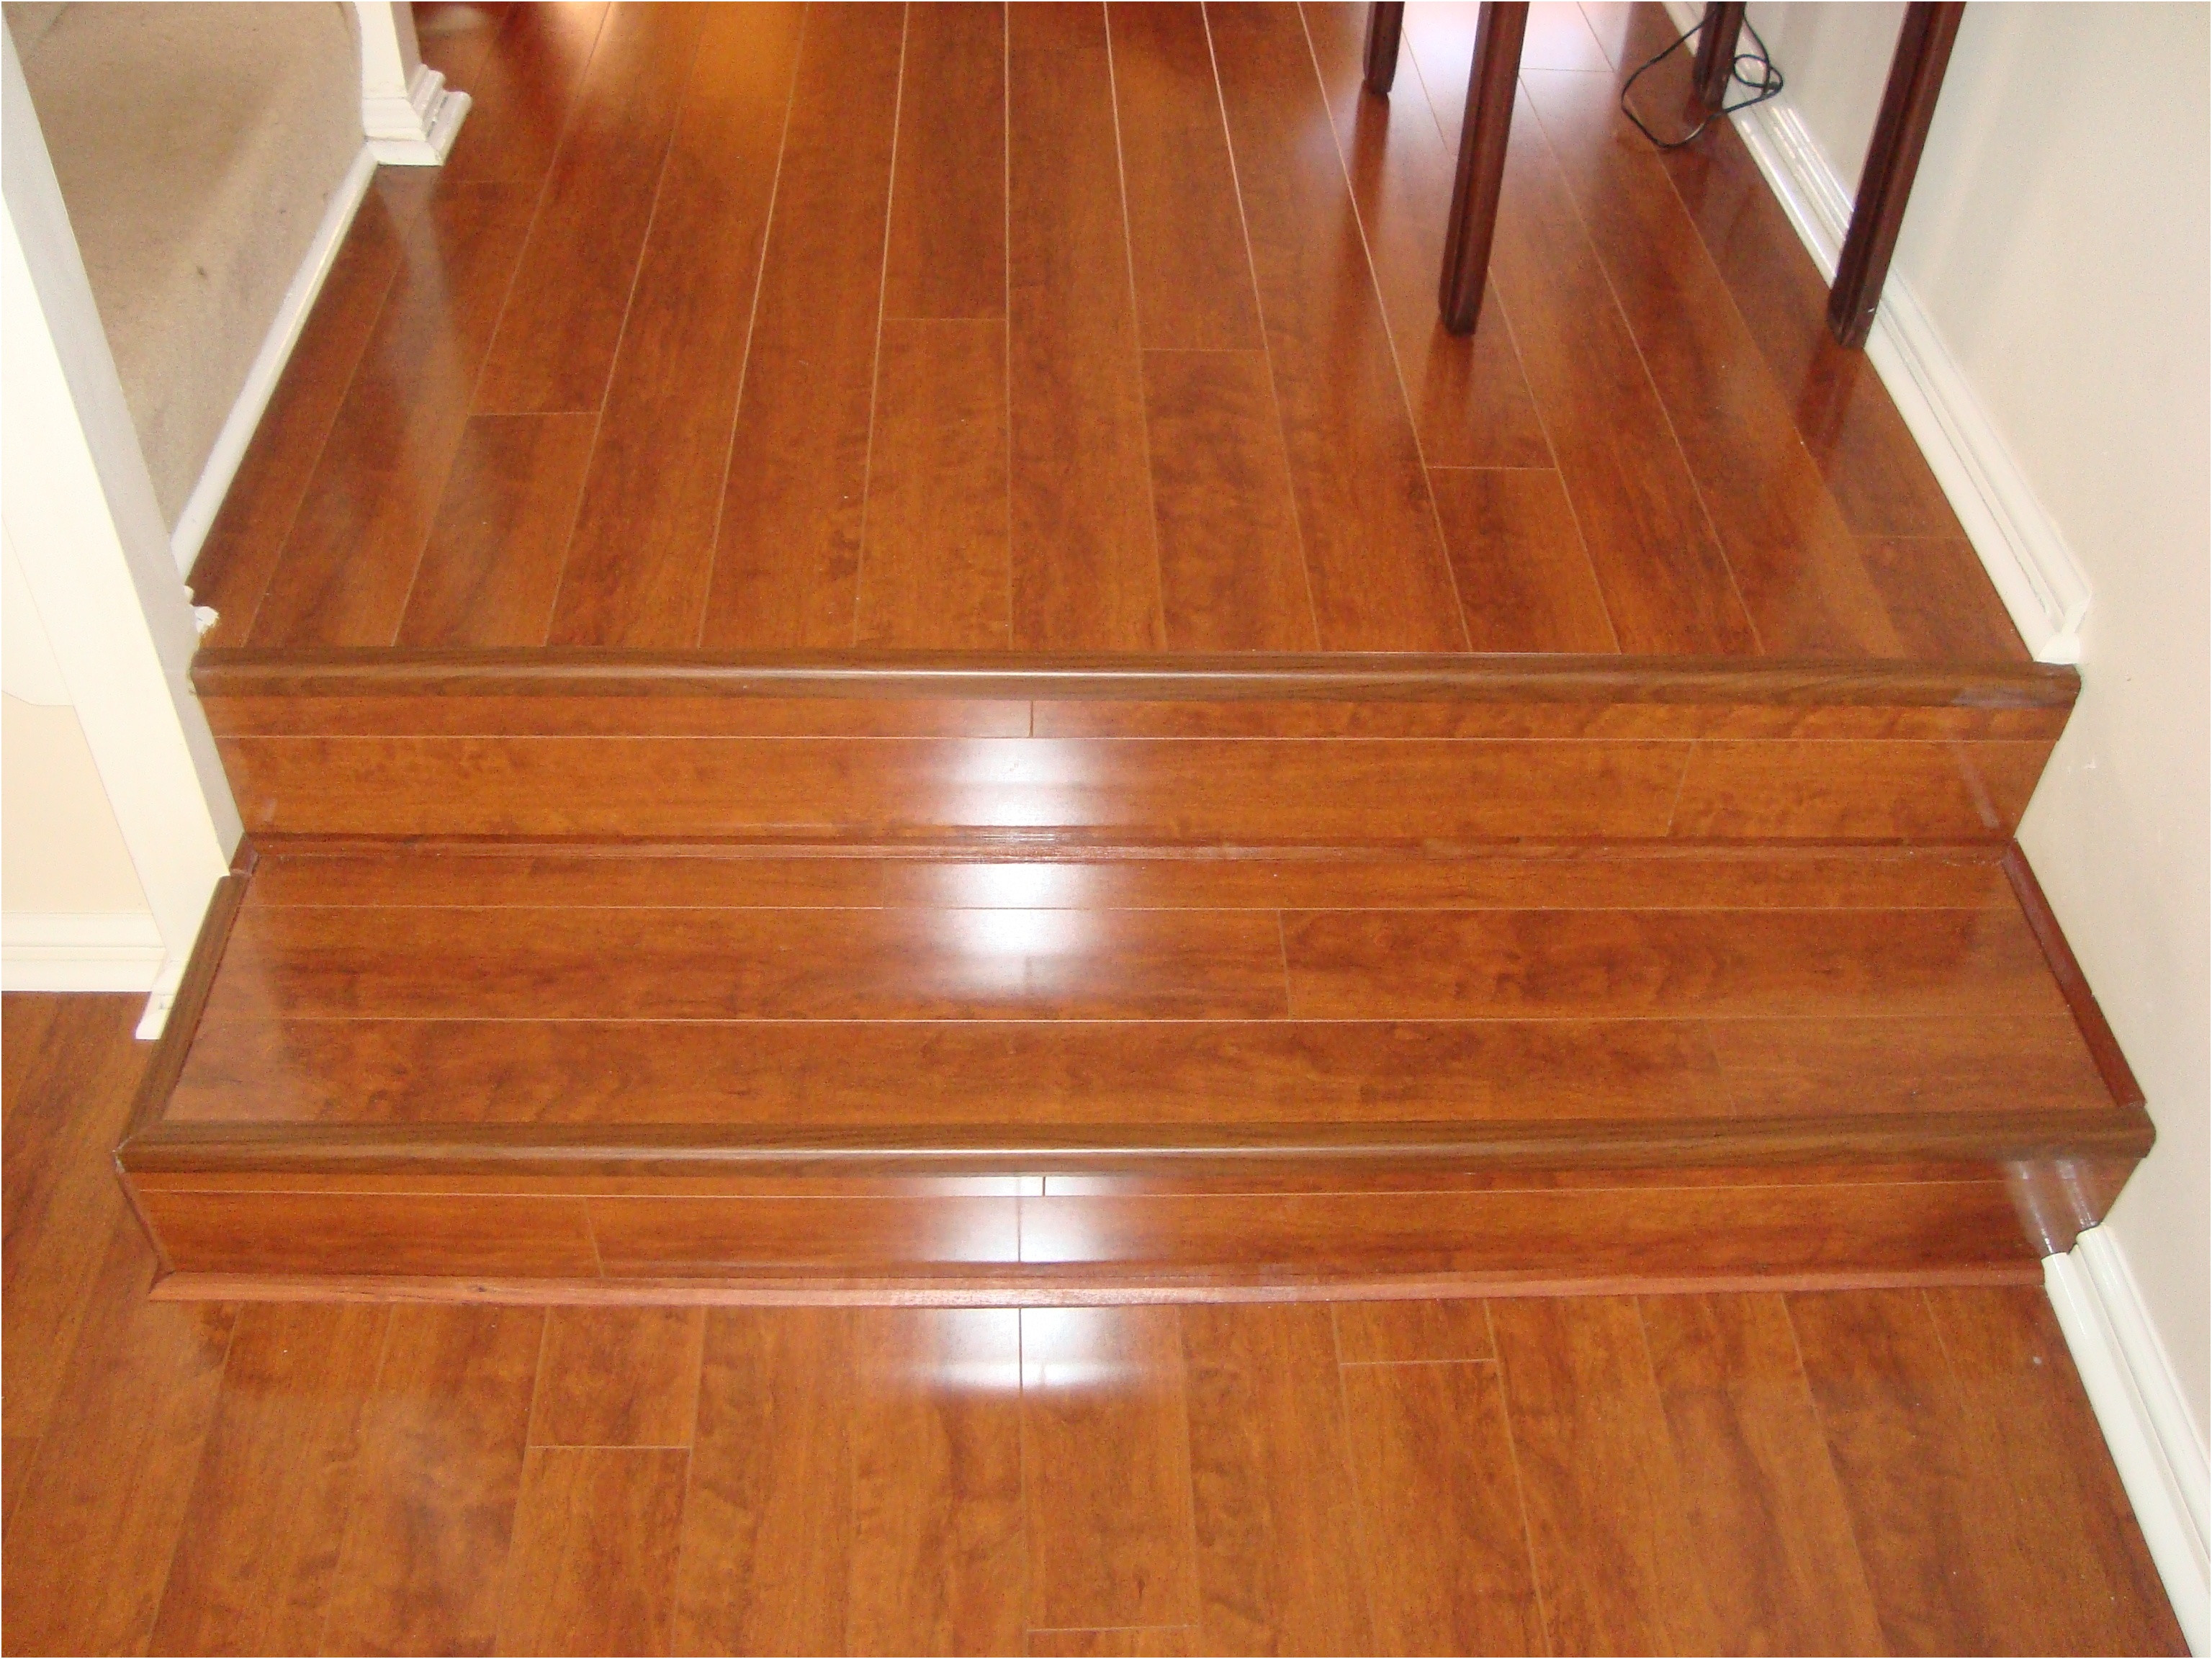 Pergo Hardwood Flooring Reviews Of Costco Laminate Wood Flooring Review Lovely Engineered Hardwood for Costco Laminate Wood Flooring Review Luxury Costco Flooring Installation Pergo Laminate Reviews Hardwood Vs with Of